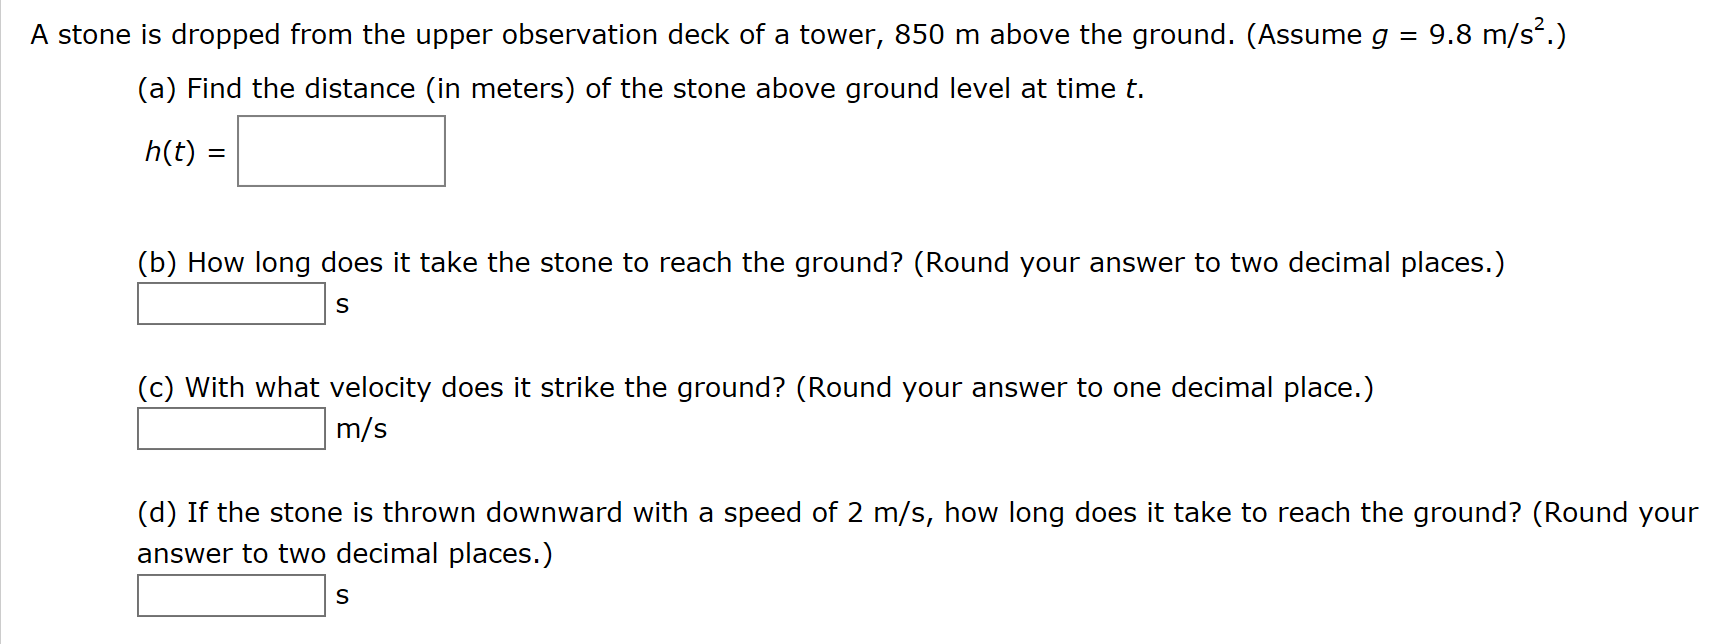 A stone is dropped from the upper observation deck of a tower, 850 m above the ground. (Assume g 9.8 m/s2.) (a) Find the distance (in meters) of the stone above ground level at time t h(t) (b) How long does it take the stone to reach the ground? (Round your answer to two decimal places.) S (c) With what velocity does it strike the ground? (Round your answer to one decimal place.) m/s (d) If the stone is thrown downward with a speed of 2 m/s, how long does it take to reach the ground? (Round your answer to two decimal places.) S